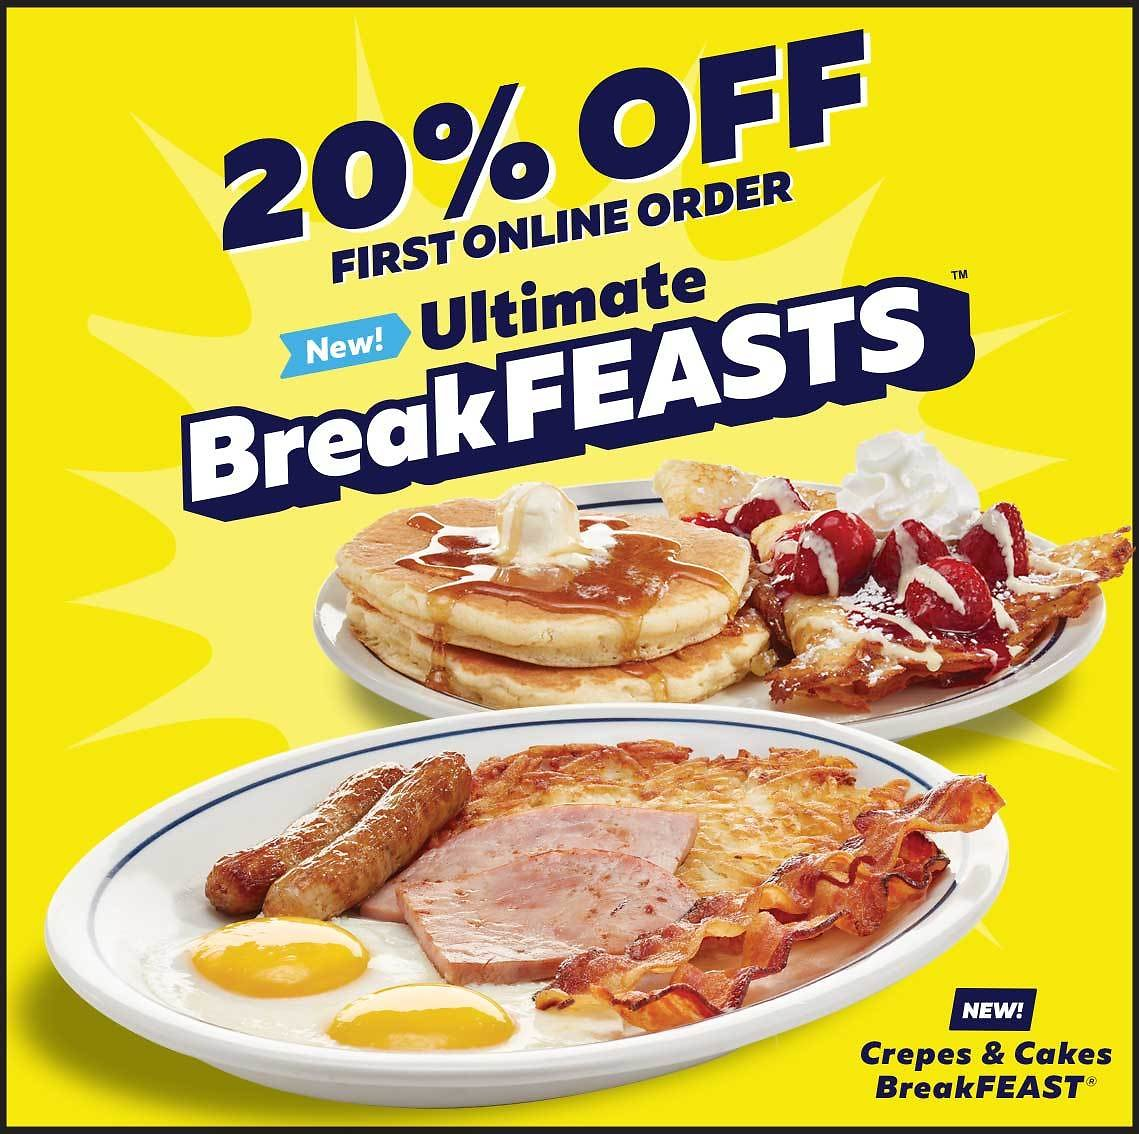 IHOP New Family Feasts and 20% Off!